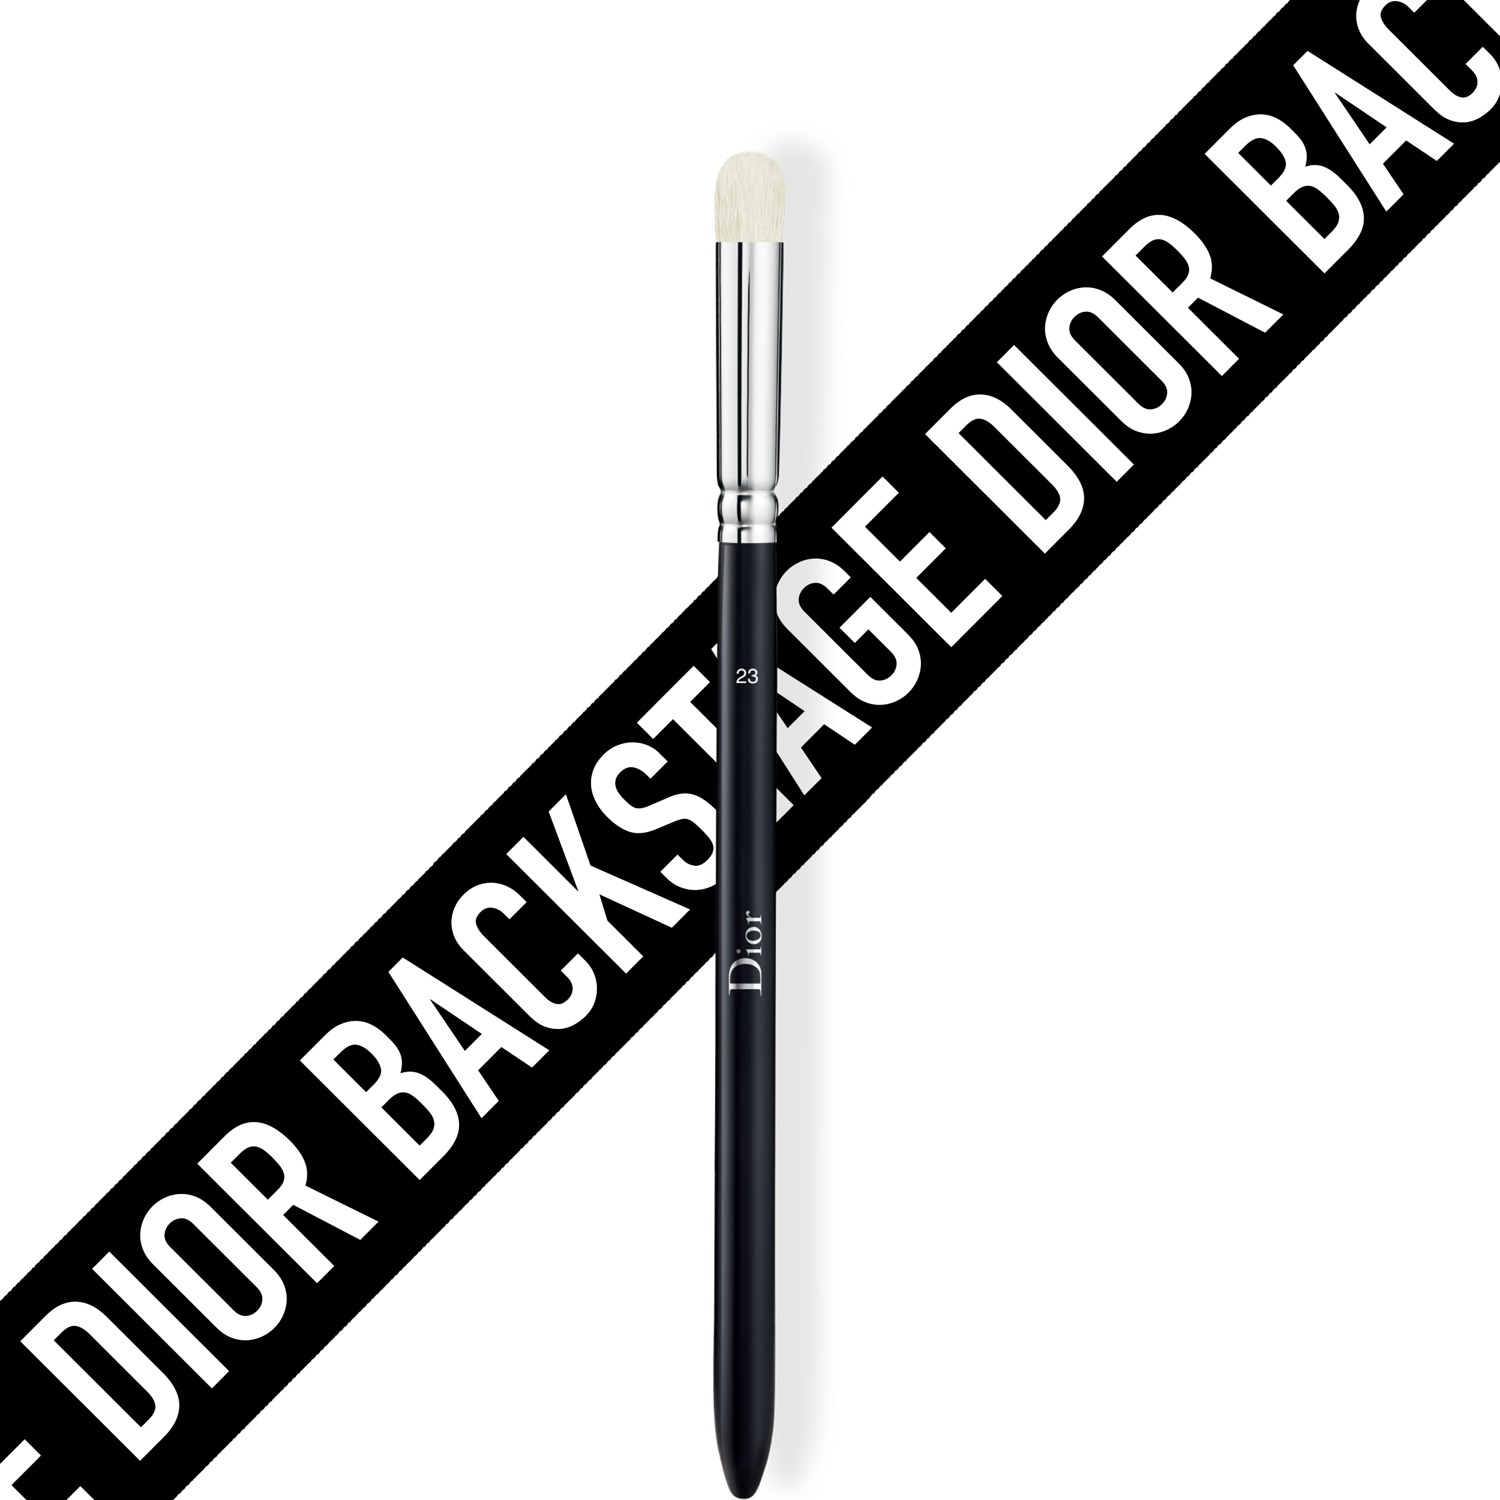 DIOR BACKSTAGE LARGE SMUDGING BRUSH NO. 23